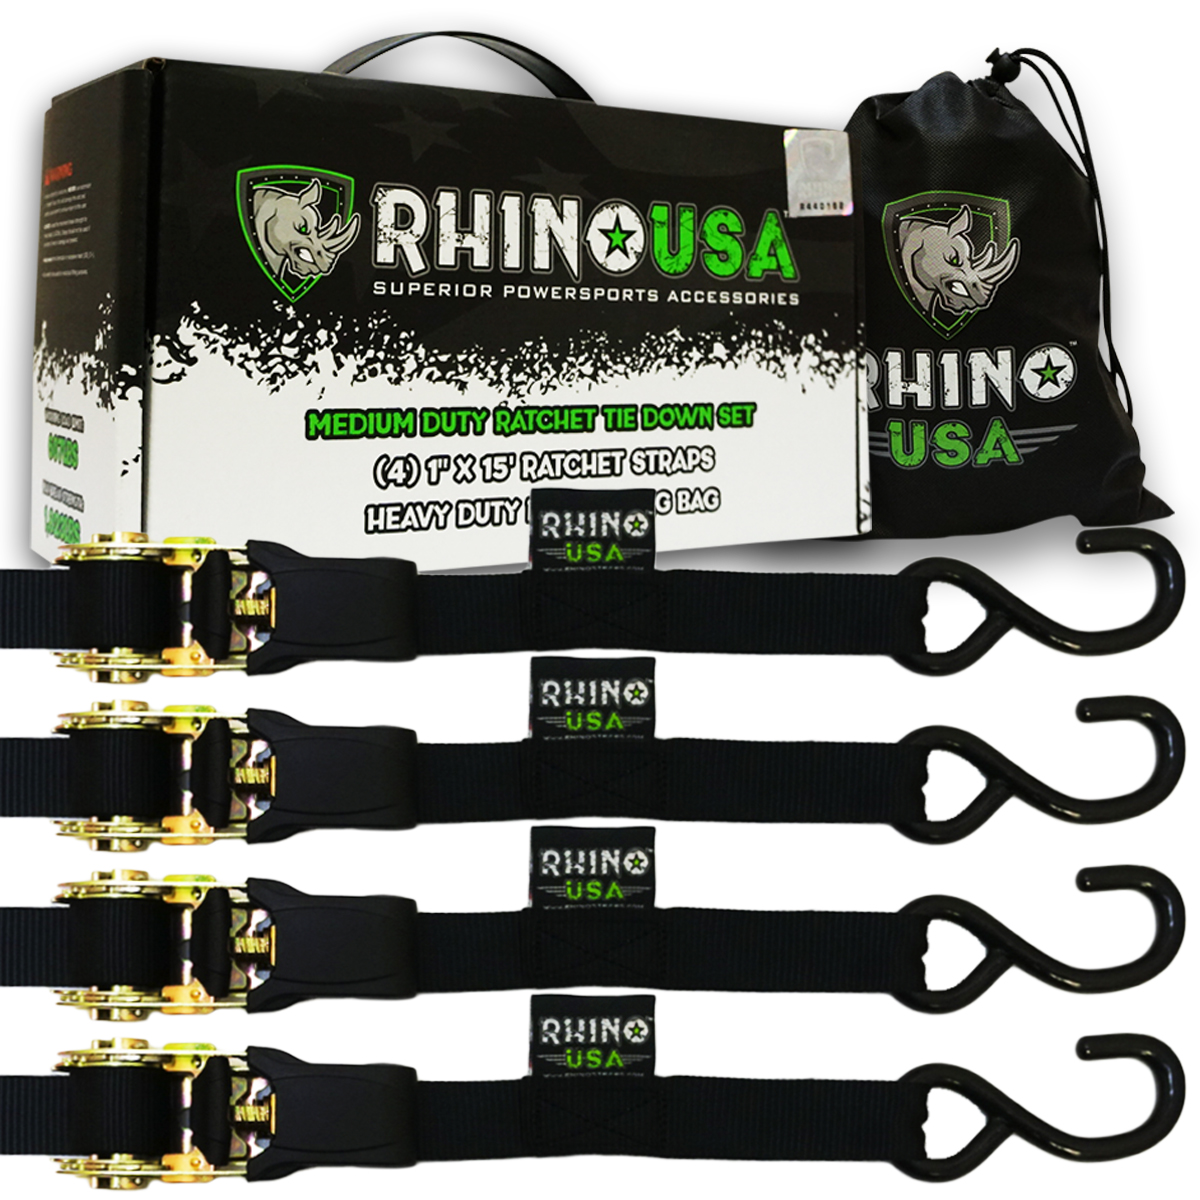 """RHINO USA Ratchet Straps Tie Down Kit - 1,823lb Guaranteed Max Break Strength, Includes (4) Premium 1"""" x 15' Rachet Tie-Downs with Padded Handles. Best for Moving, Securing Motorcycle, and Equipment"""